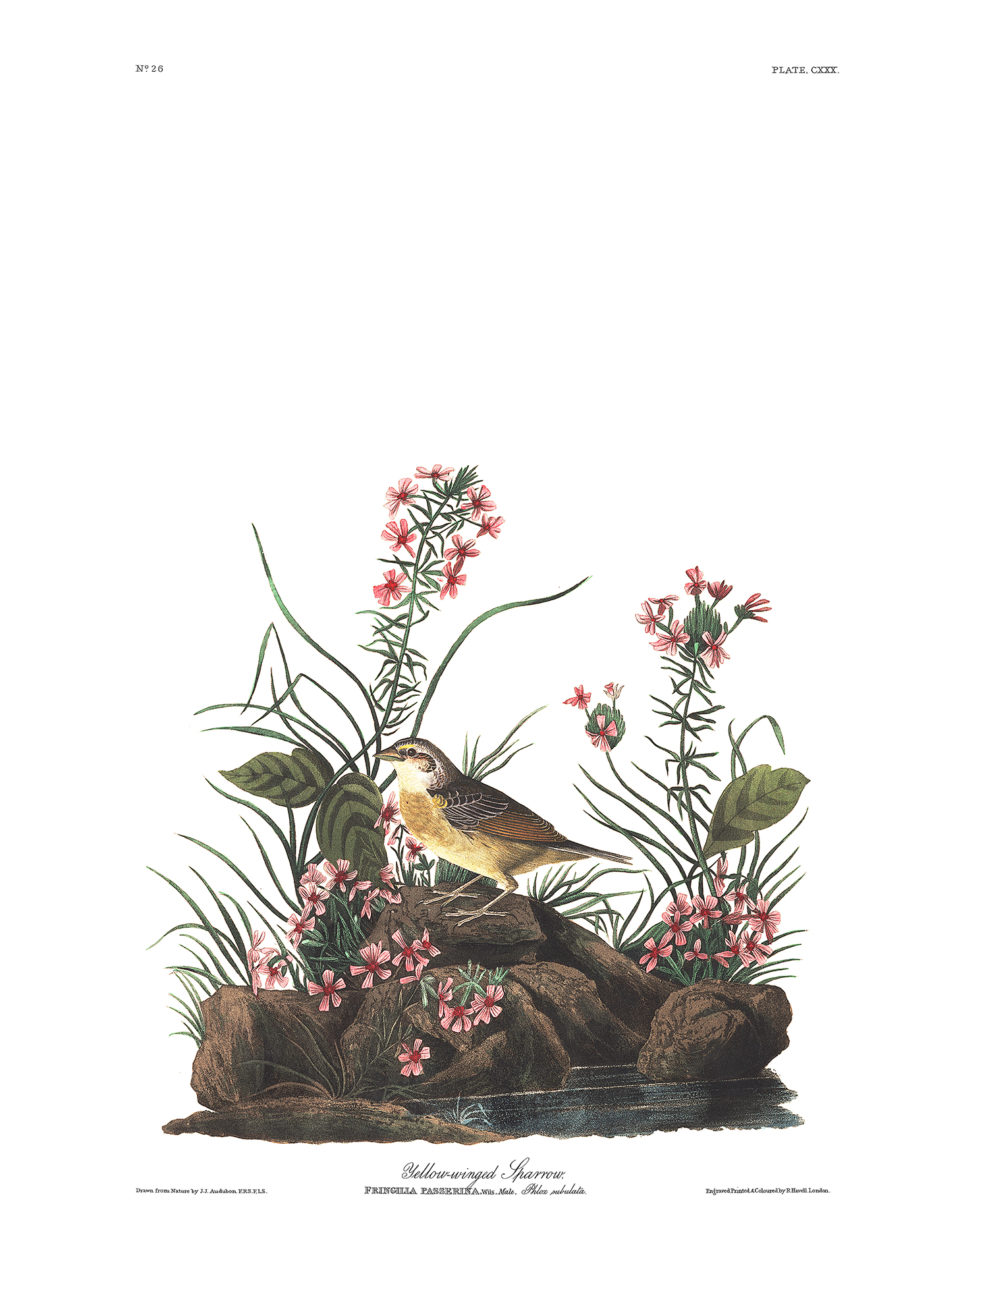 Plate 130 - Yellow Winged Sparrow